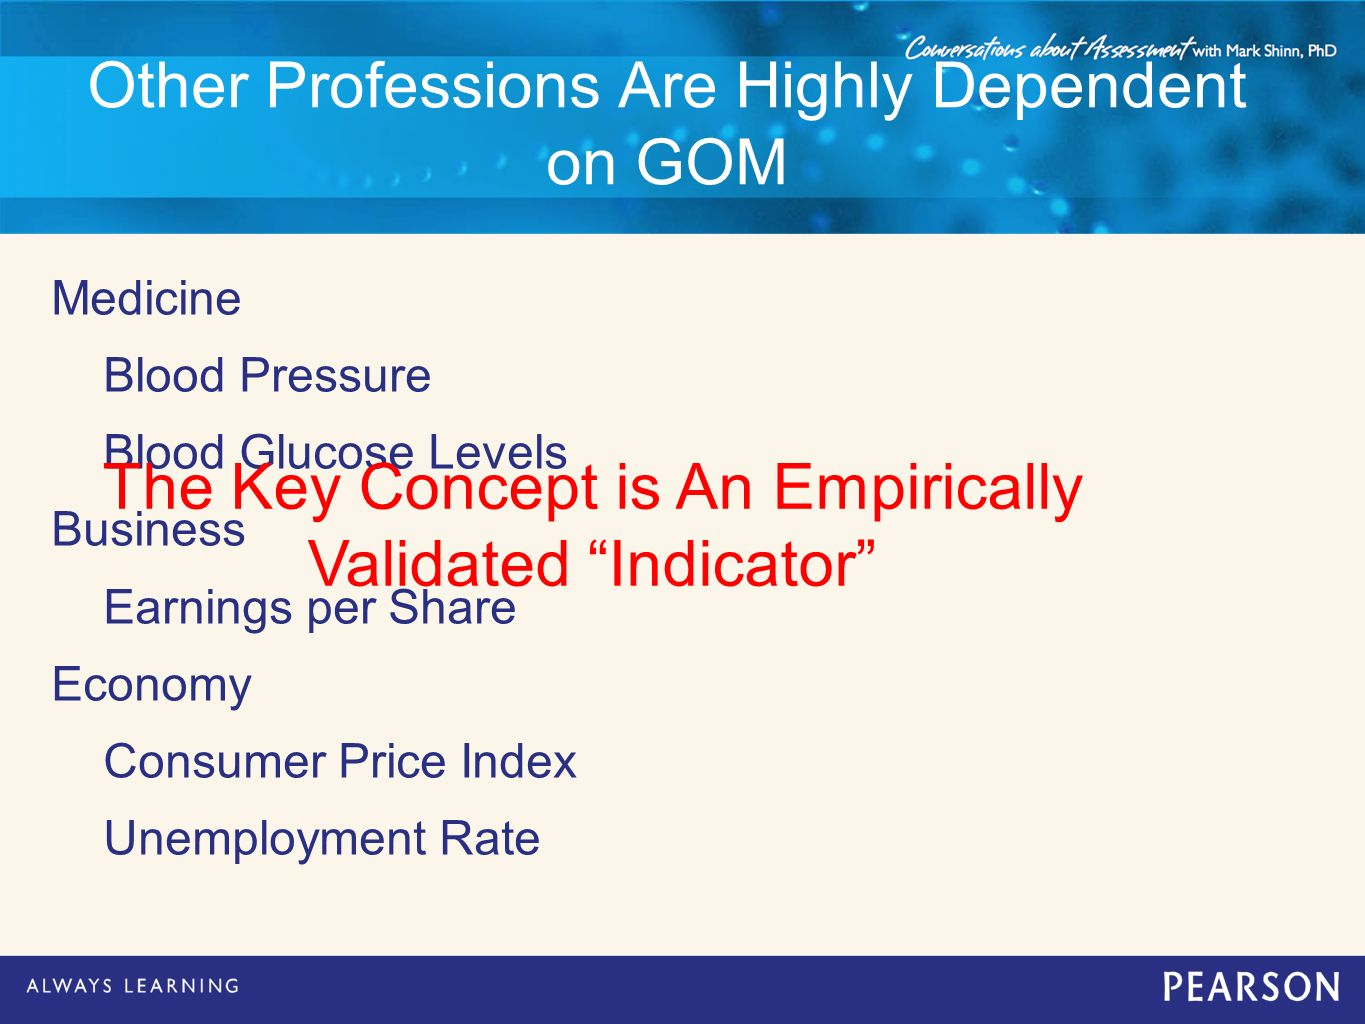 Other Professions Are Highly Dependent on GOM Medicine Blood Pressure Blood Glucose Levels Business Earnings per Share Economy Consumer Price Index Un